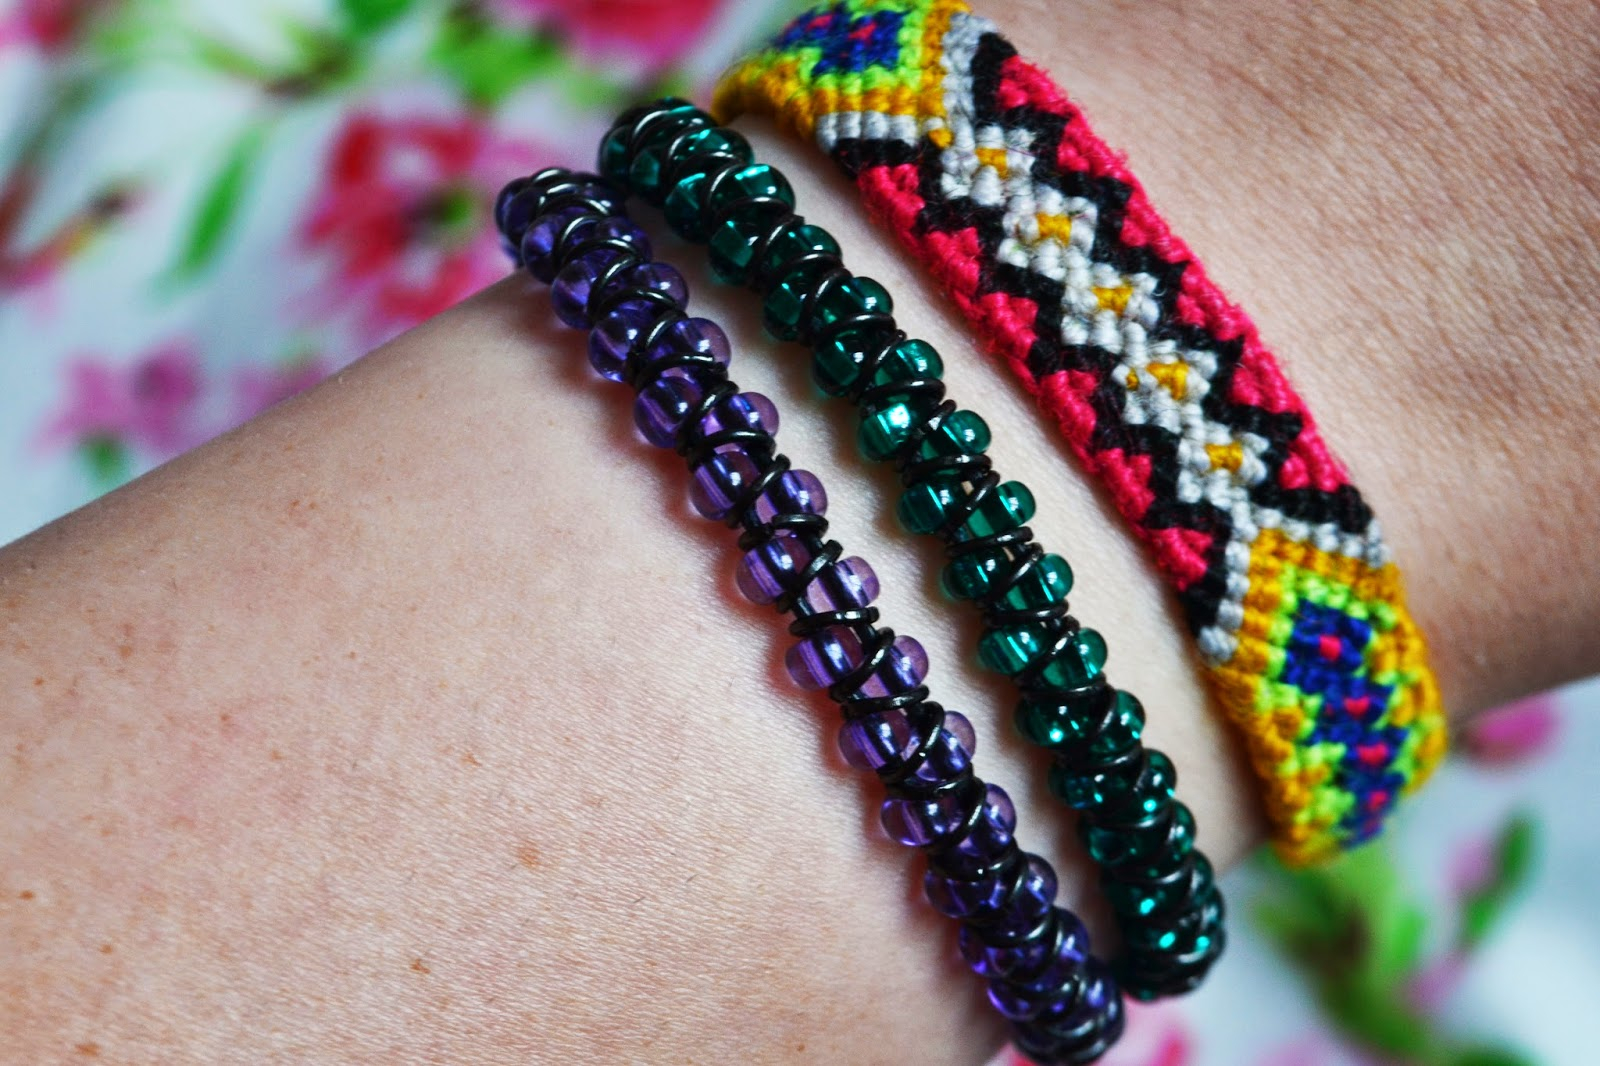 WEARING THE COMPLETED SEED BEAD AND JUMP RING BRACELET